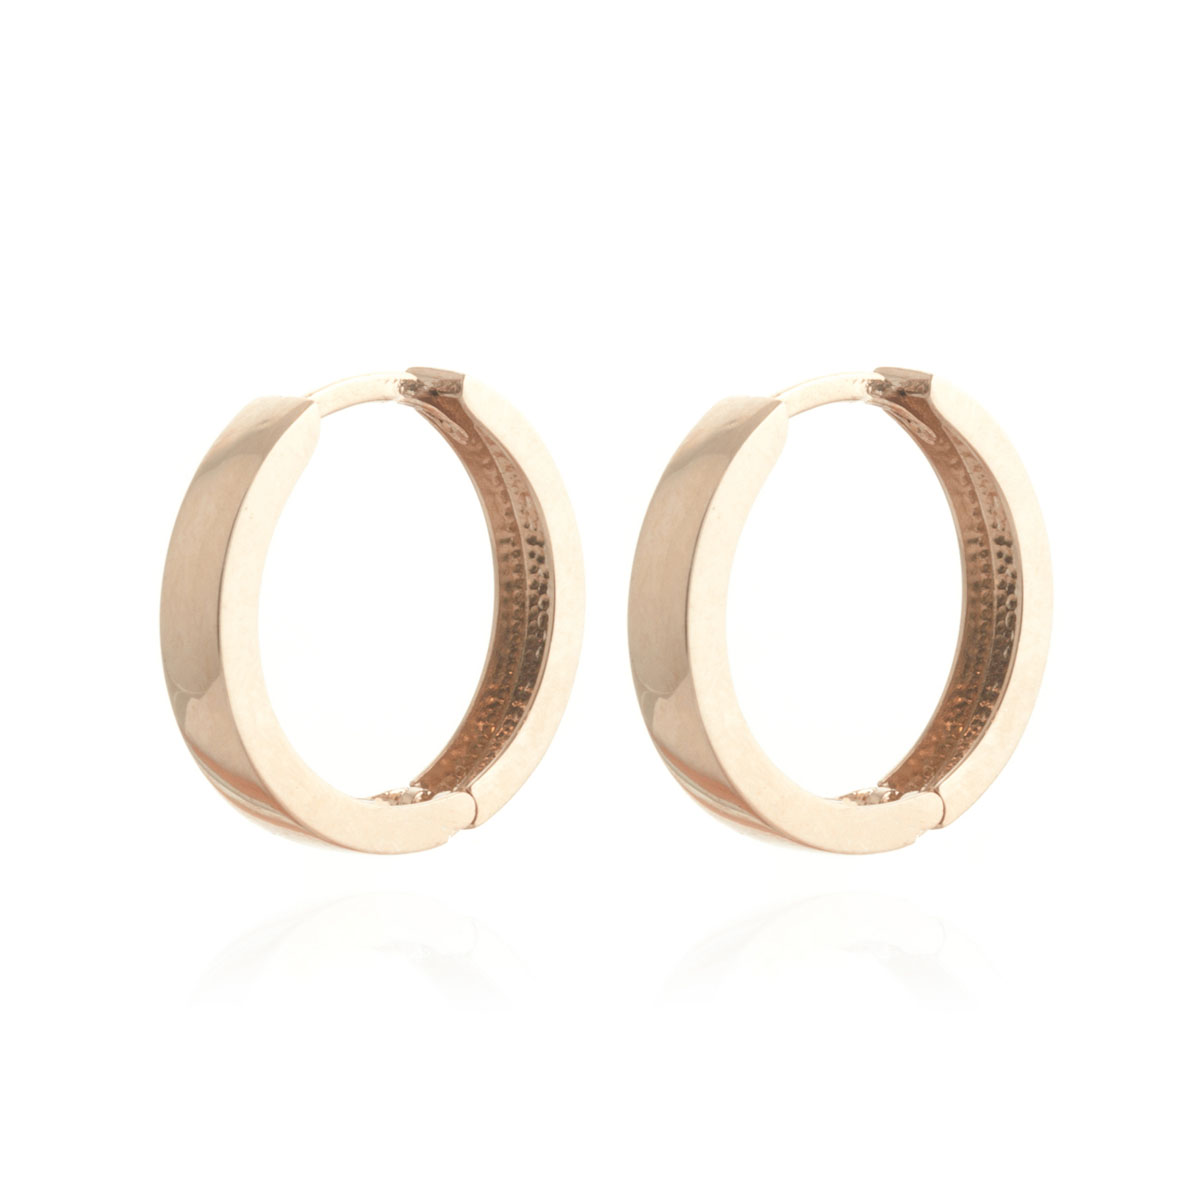 Diamond Earrings in 9ct Rose Gold